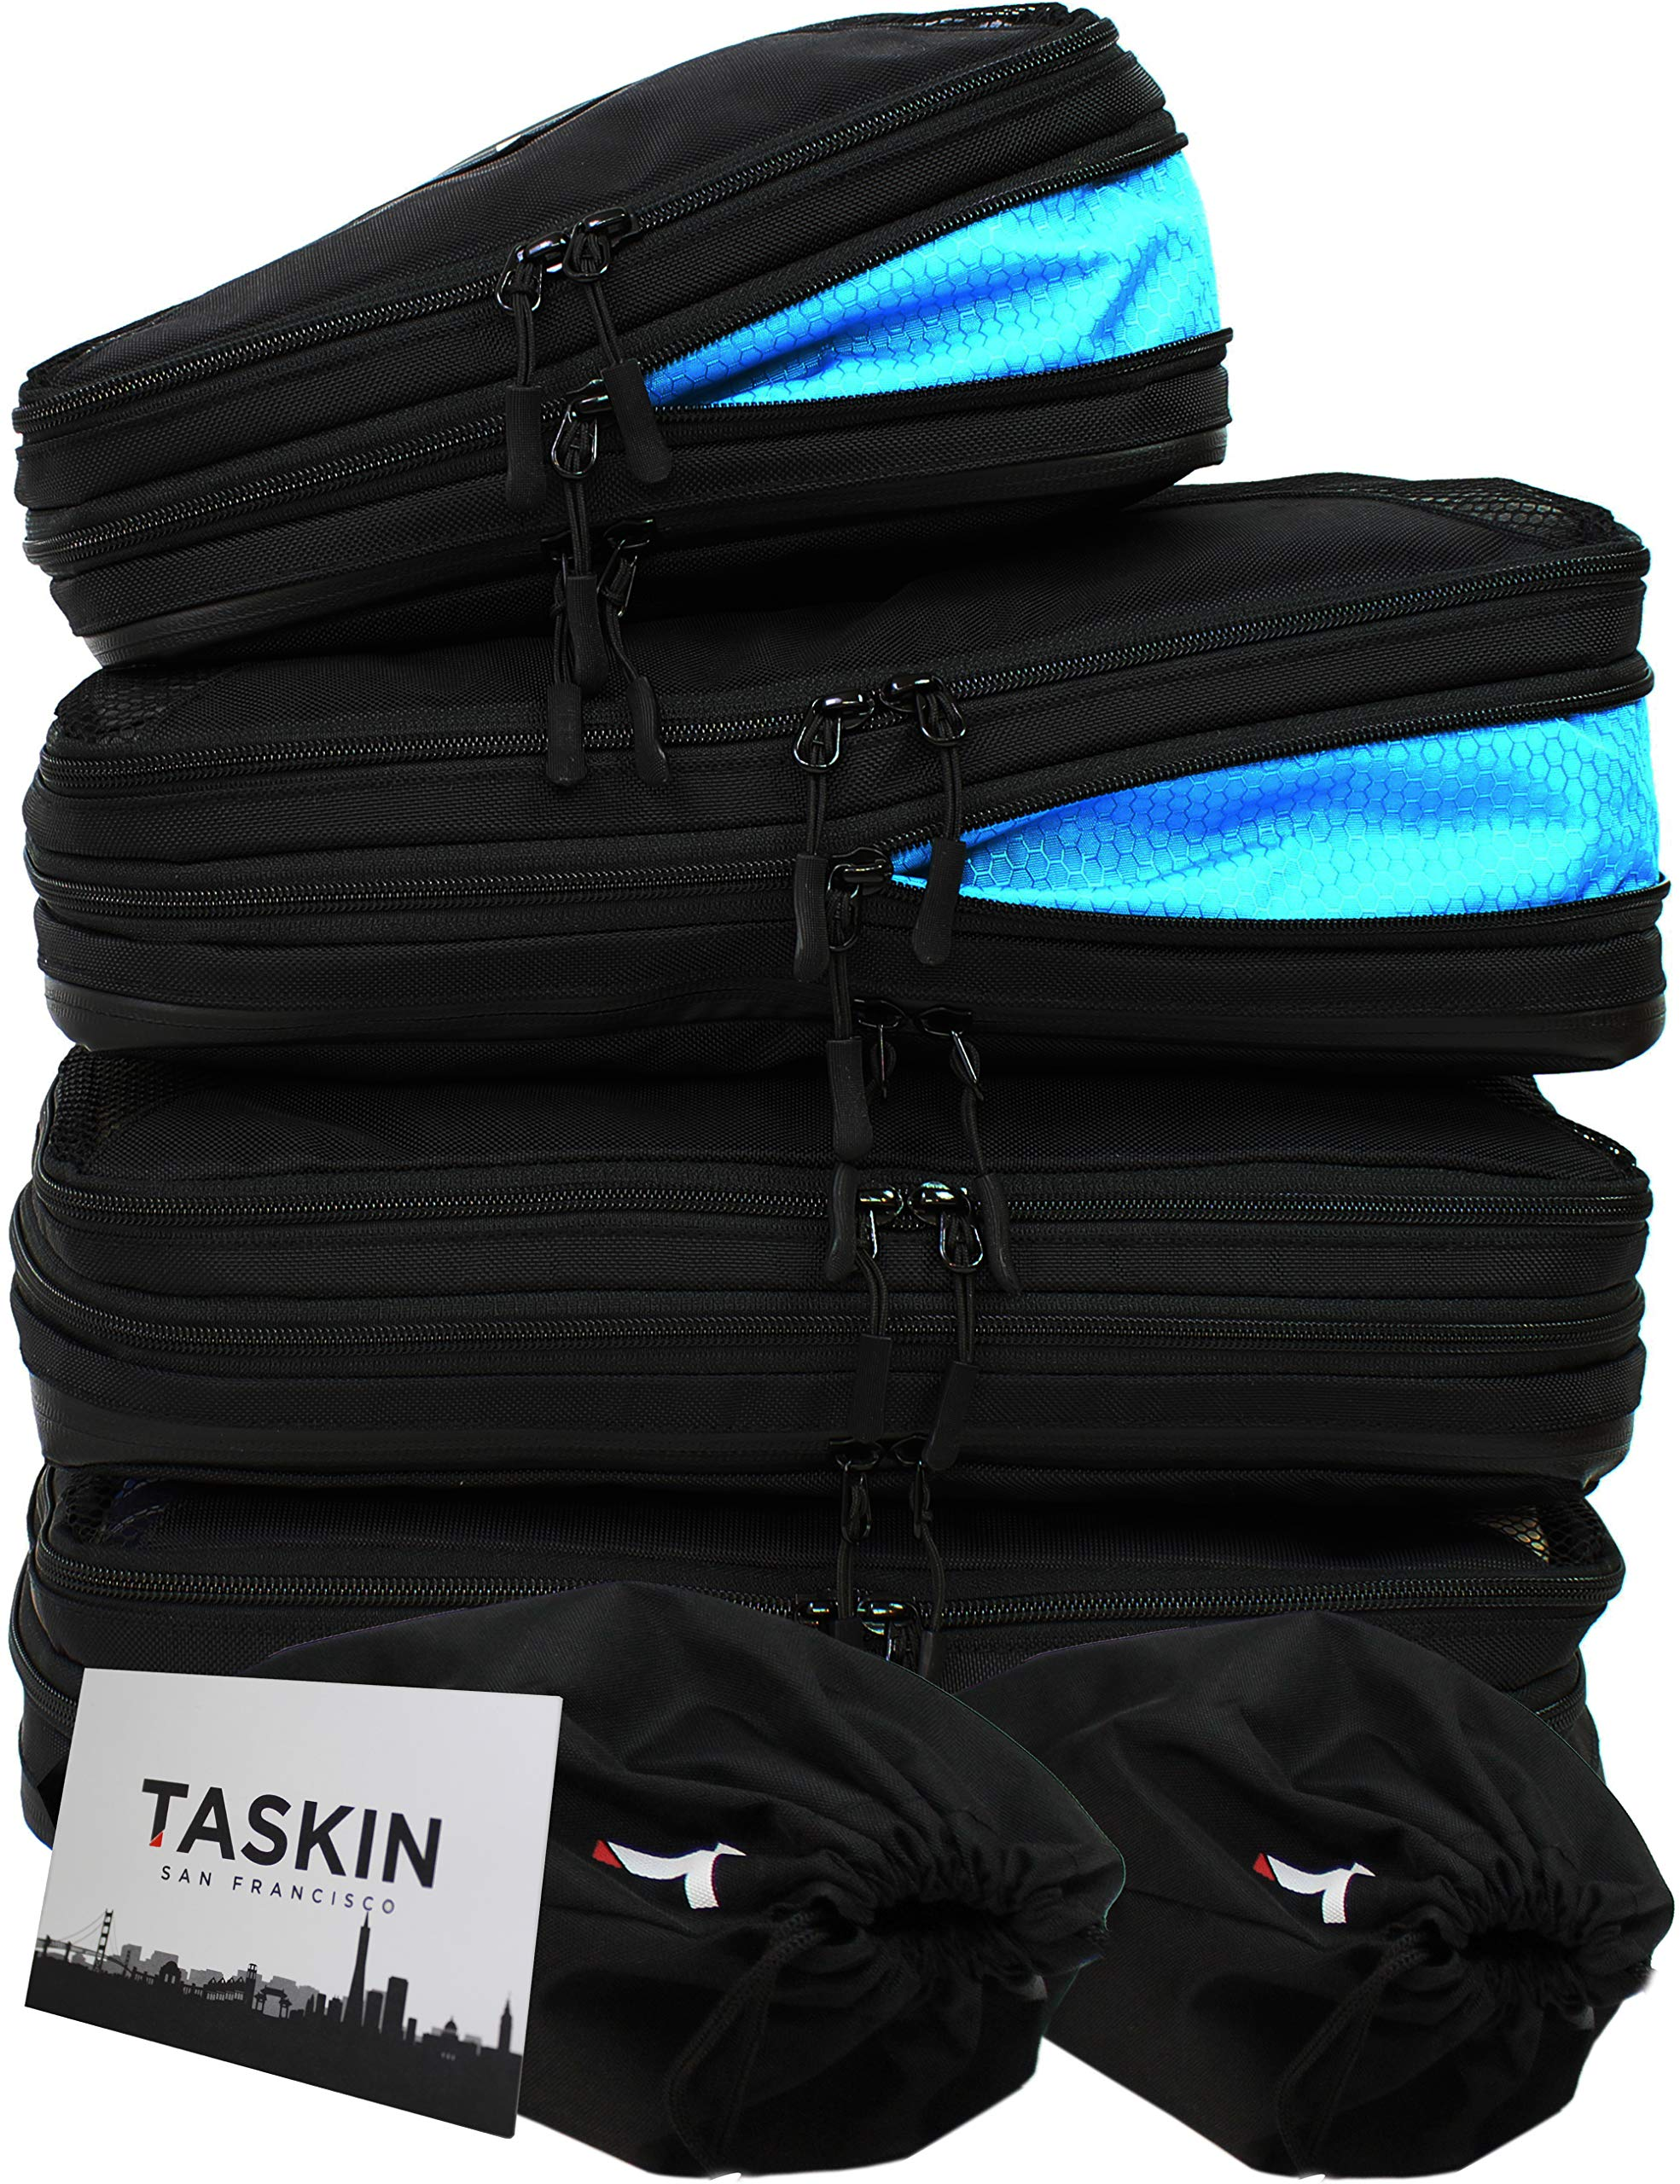 Compression Packing Cubes w/Clean/Dirty Compartments Set of 3 Large + 1 Small + 2 Shoe Bags - 6 Piece Set